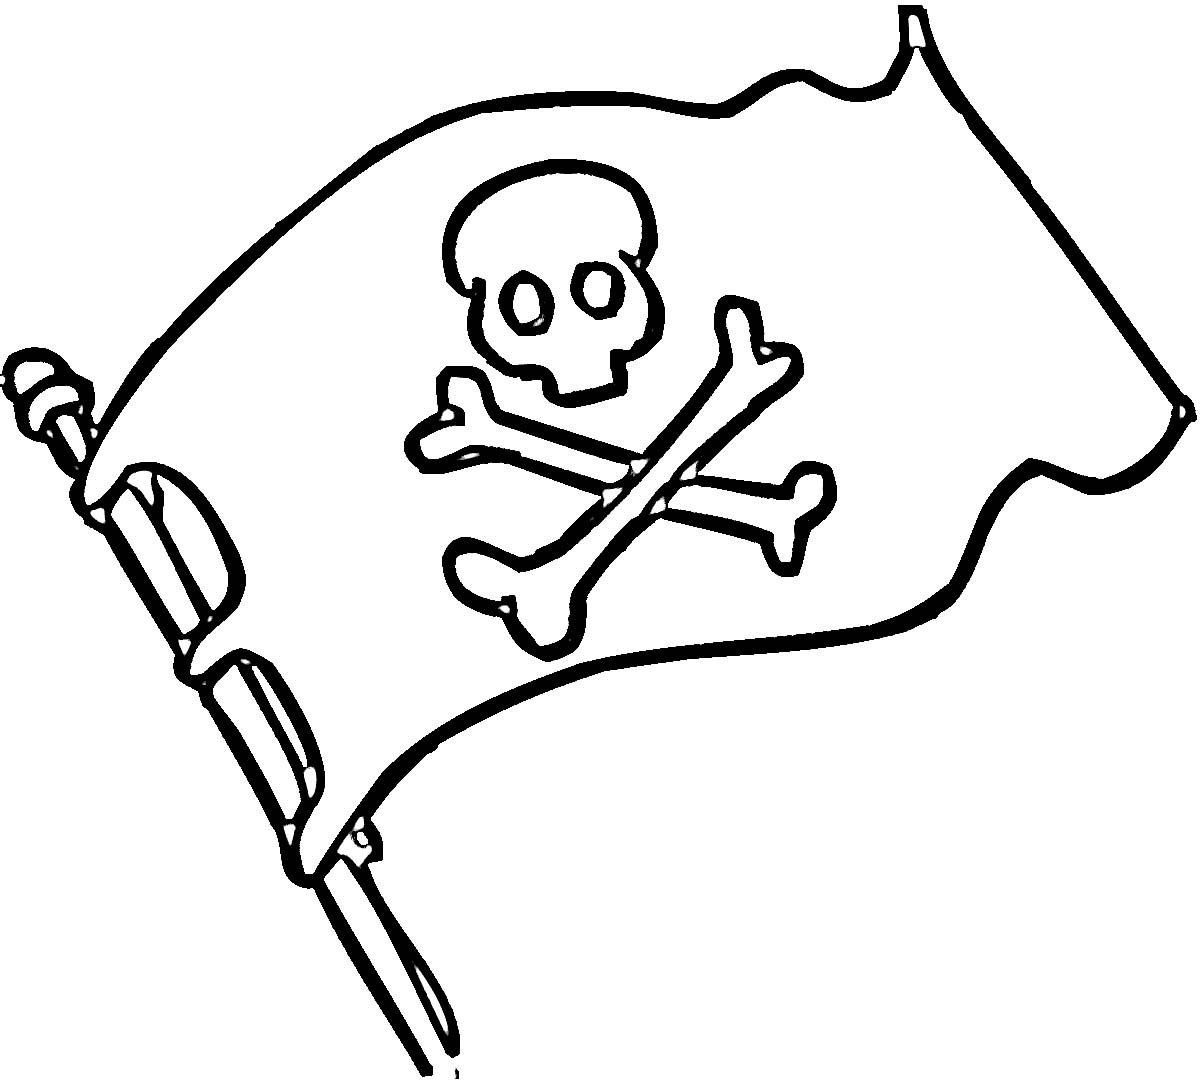 pirate flag coloring pages u2013 coloring pages u0026 pictures u2013 imagixs